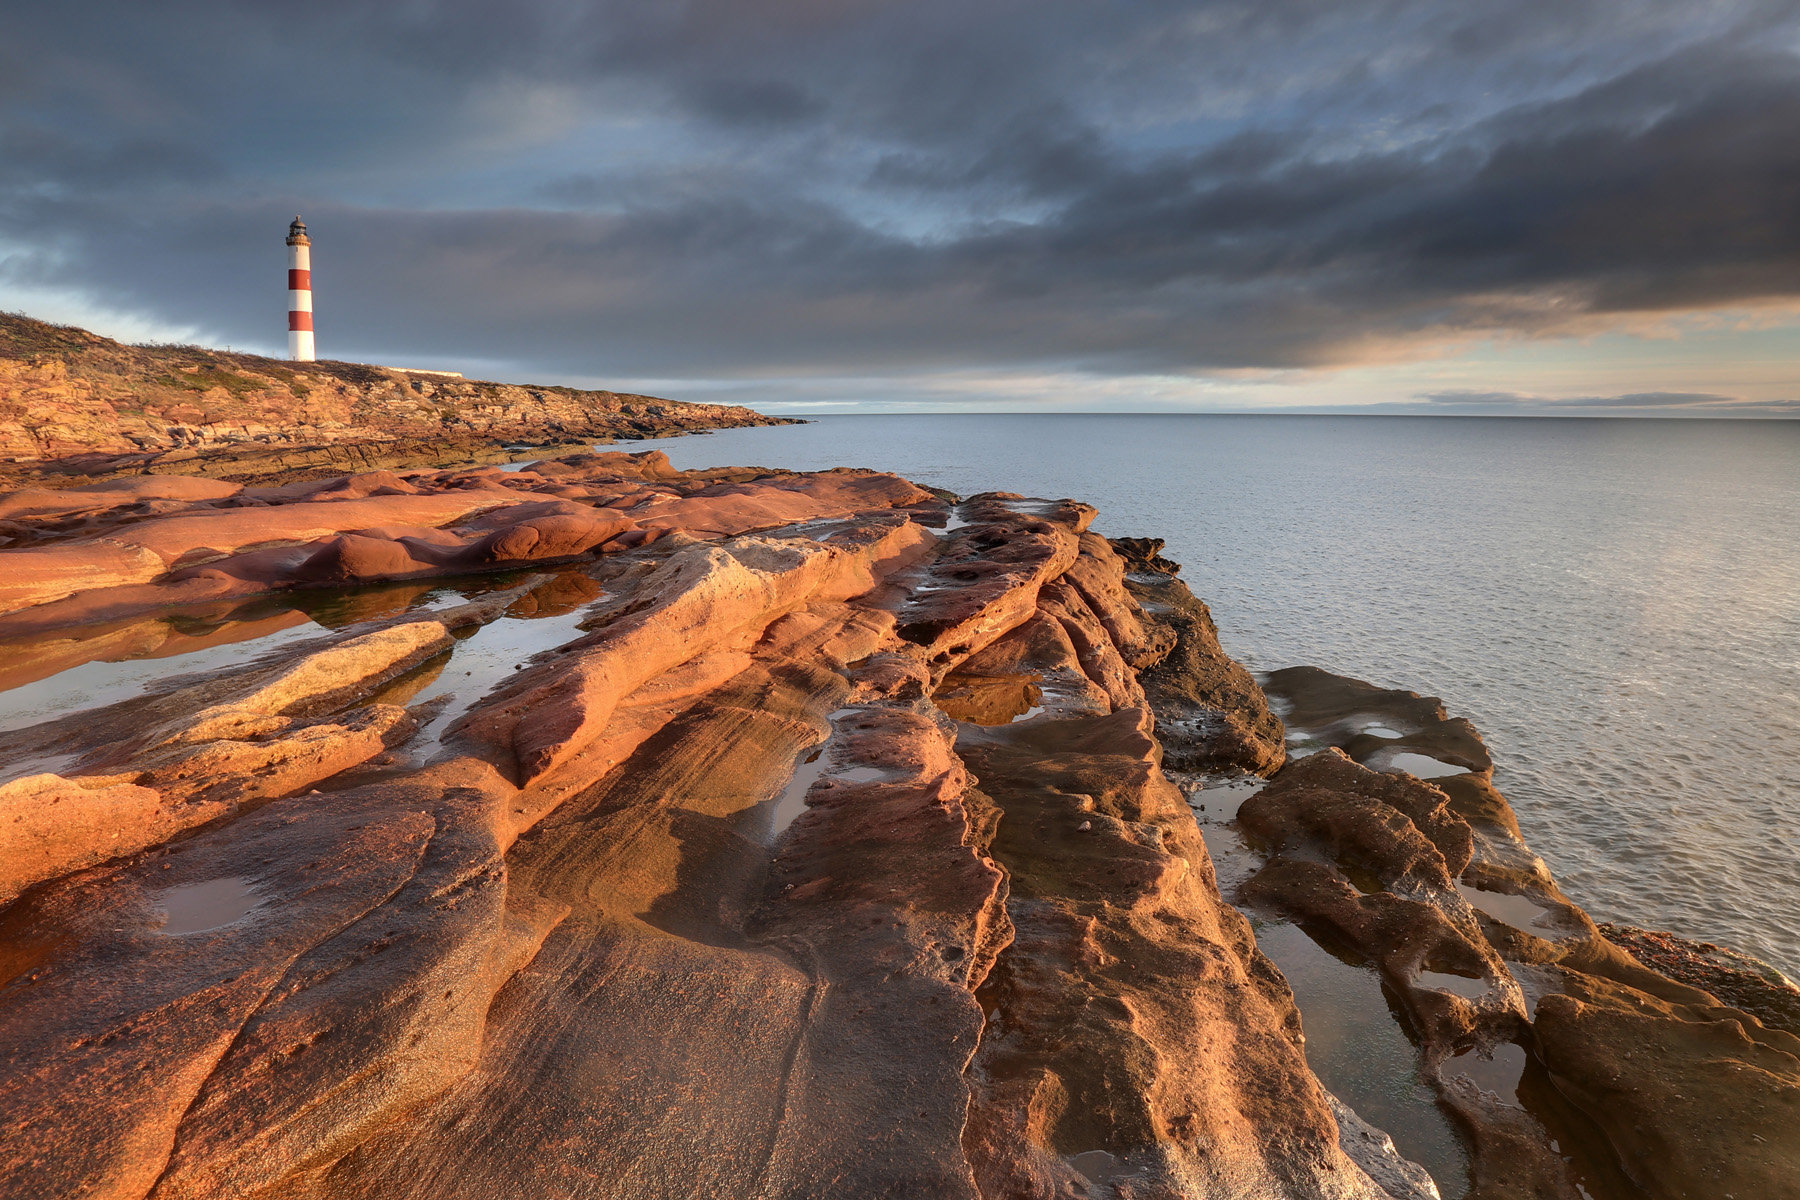 Tarbat ness lighthouse- dawn light